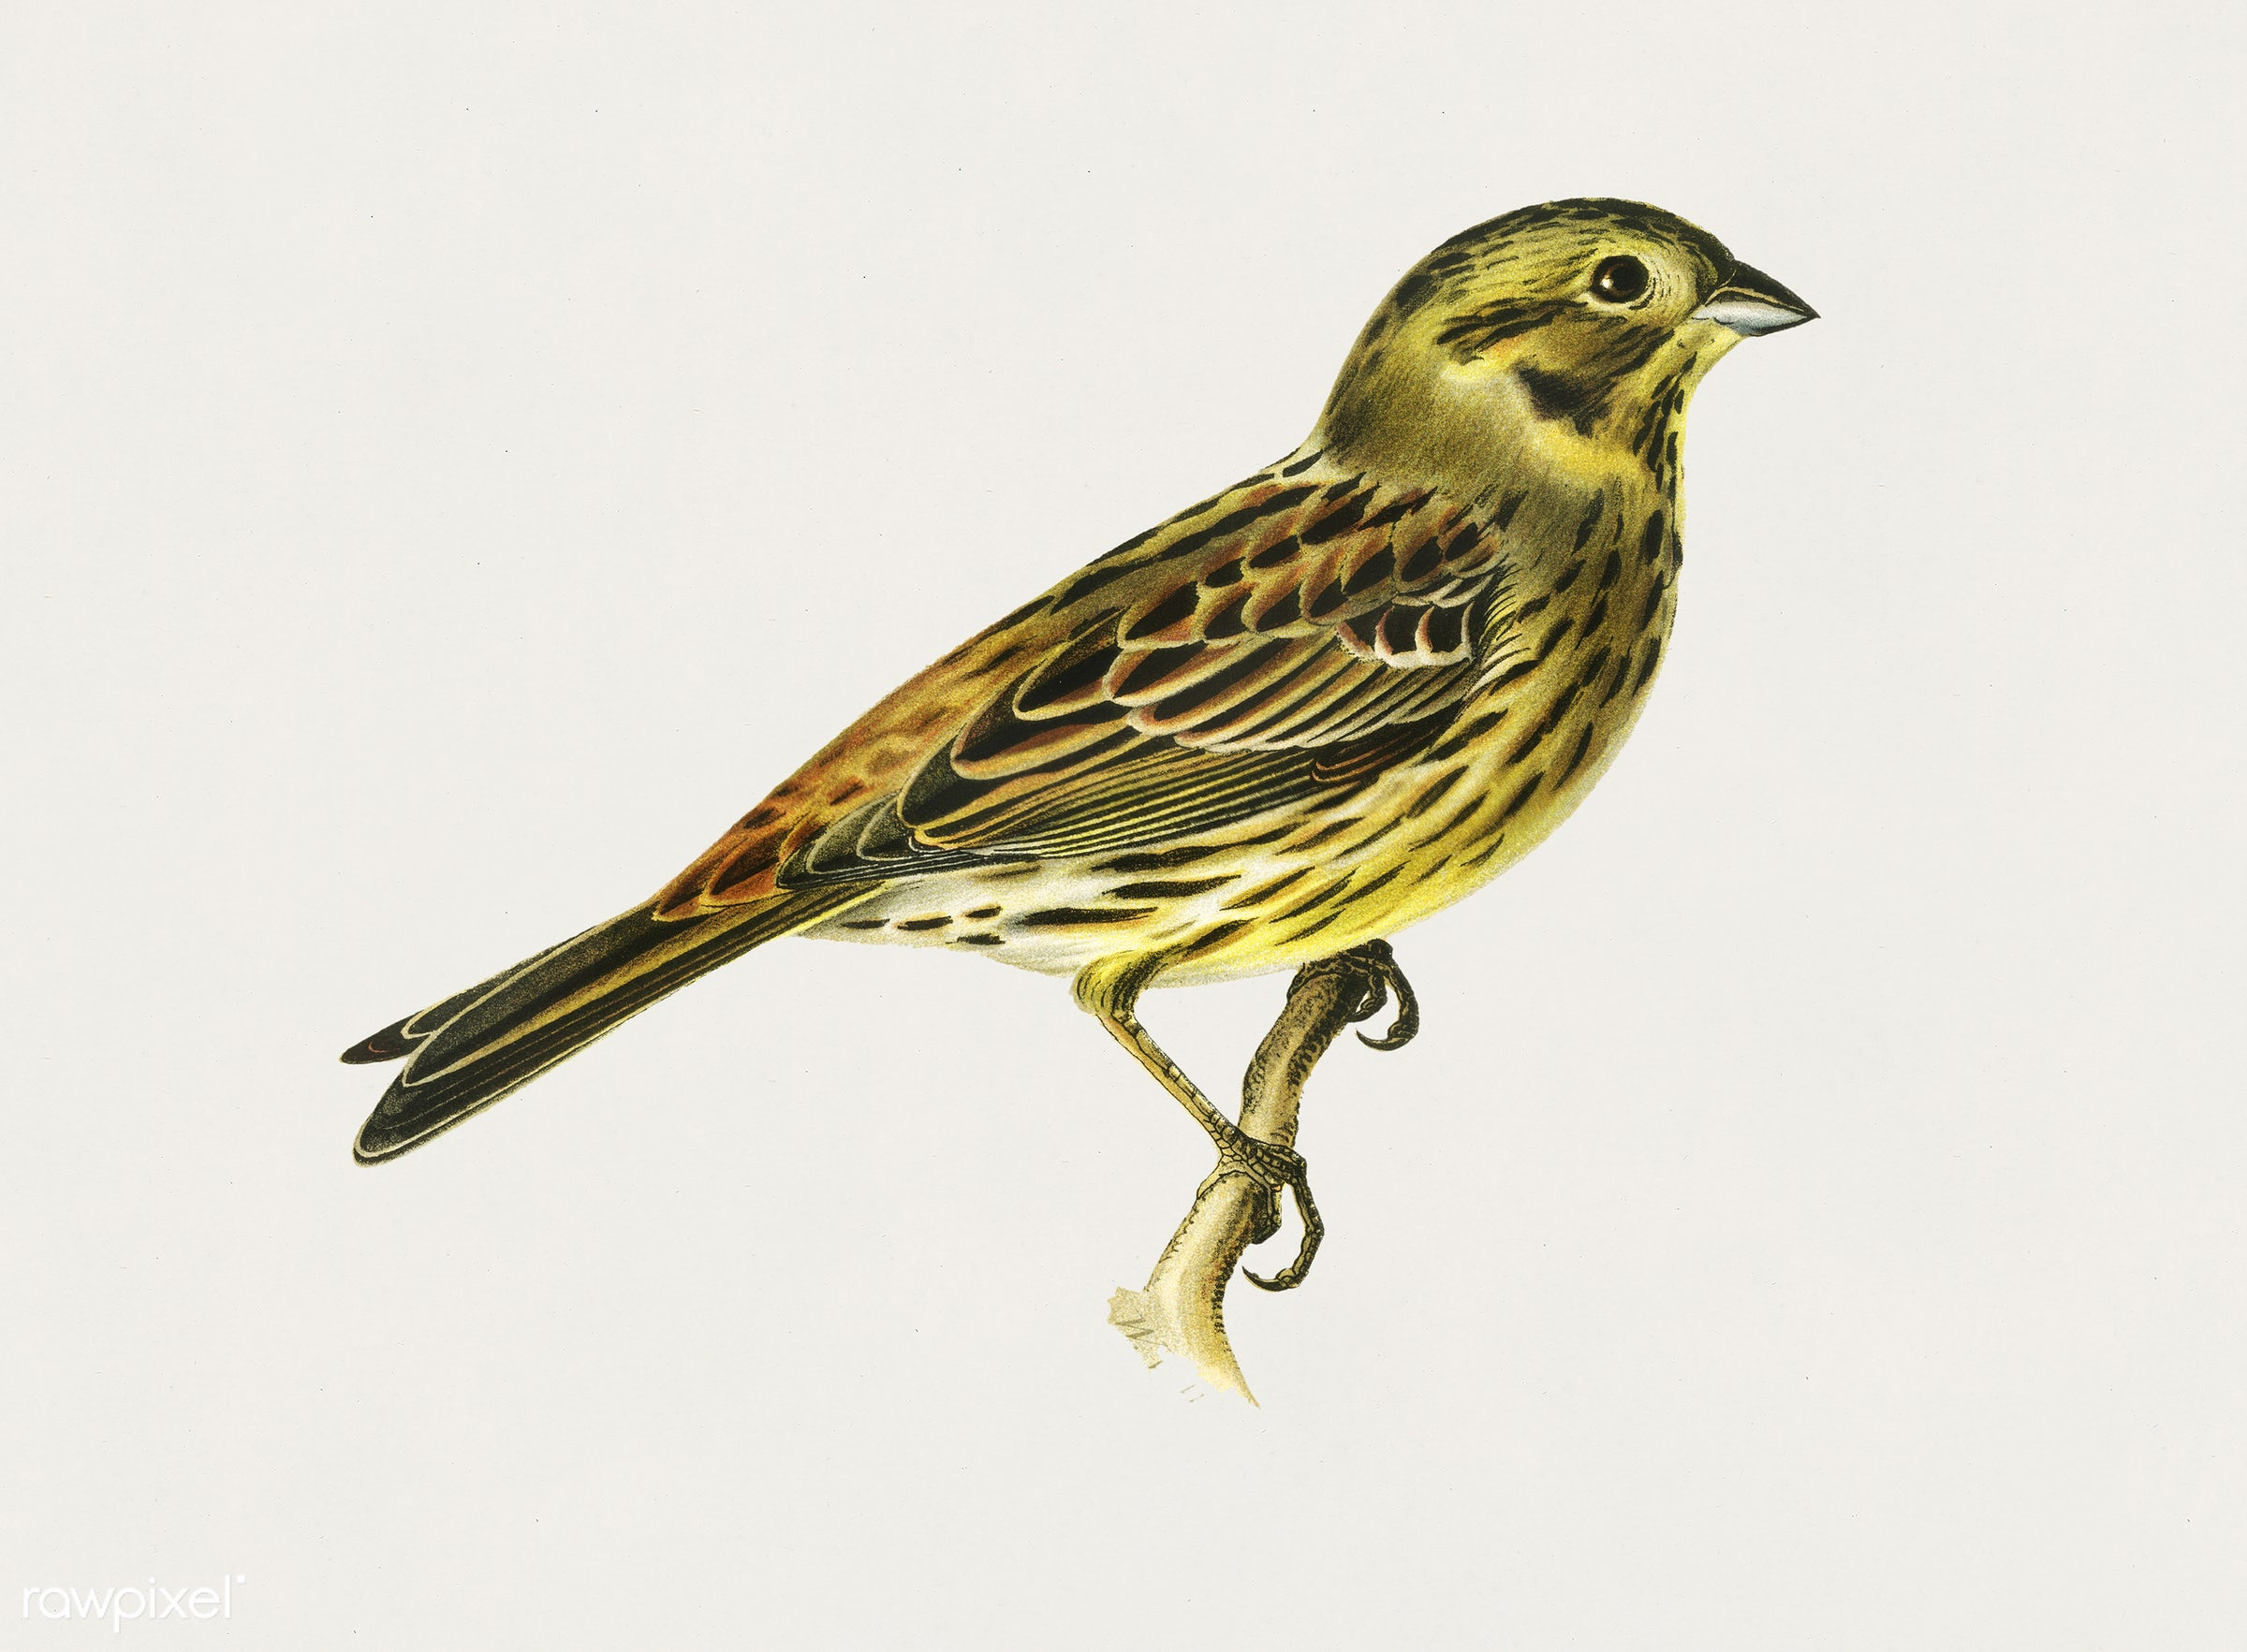 Yellowhammer female (Emberiza citrinella) illustrated by the von Wright brothers. Digitally enhanced from our own 1929 folio...